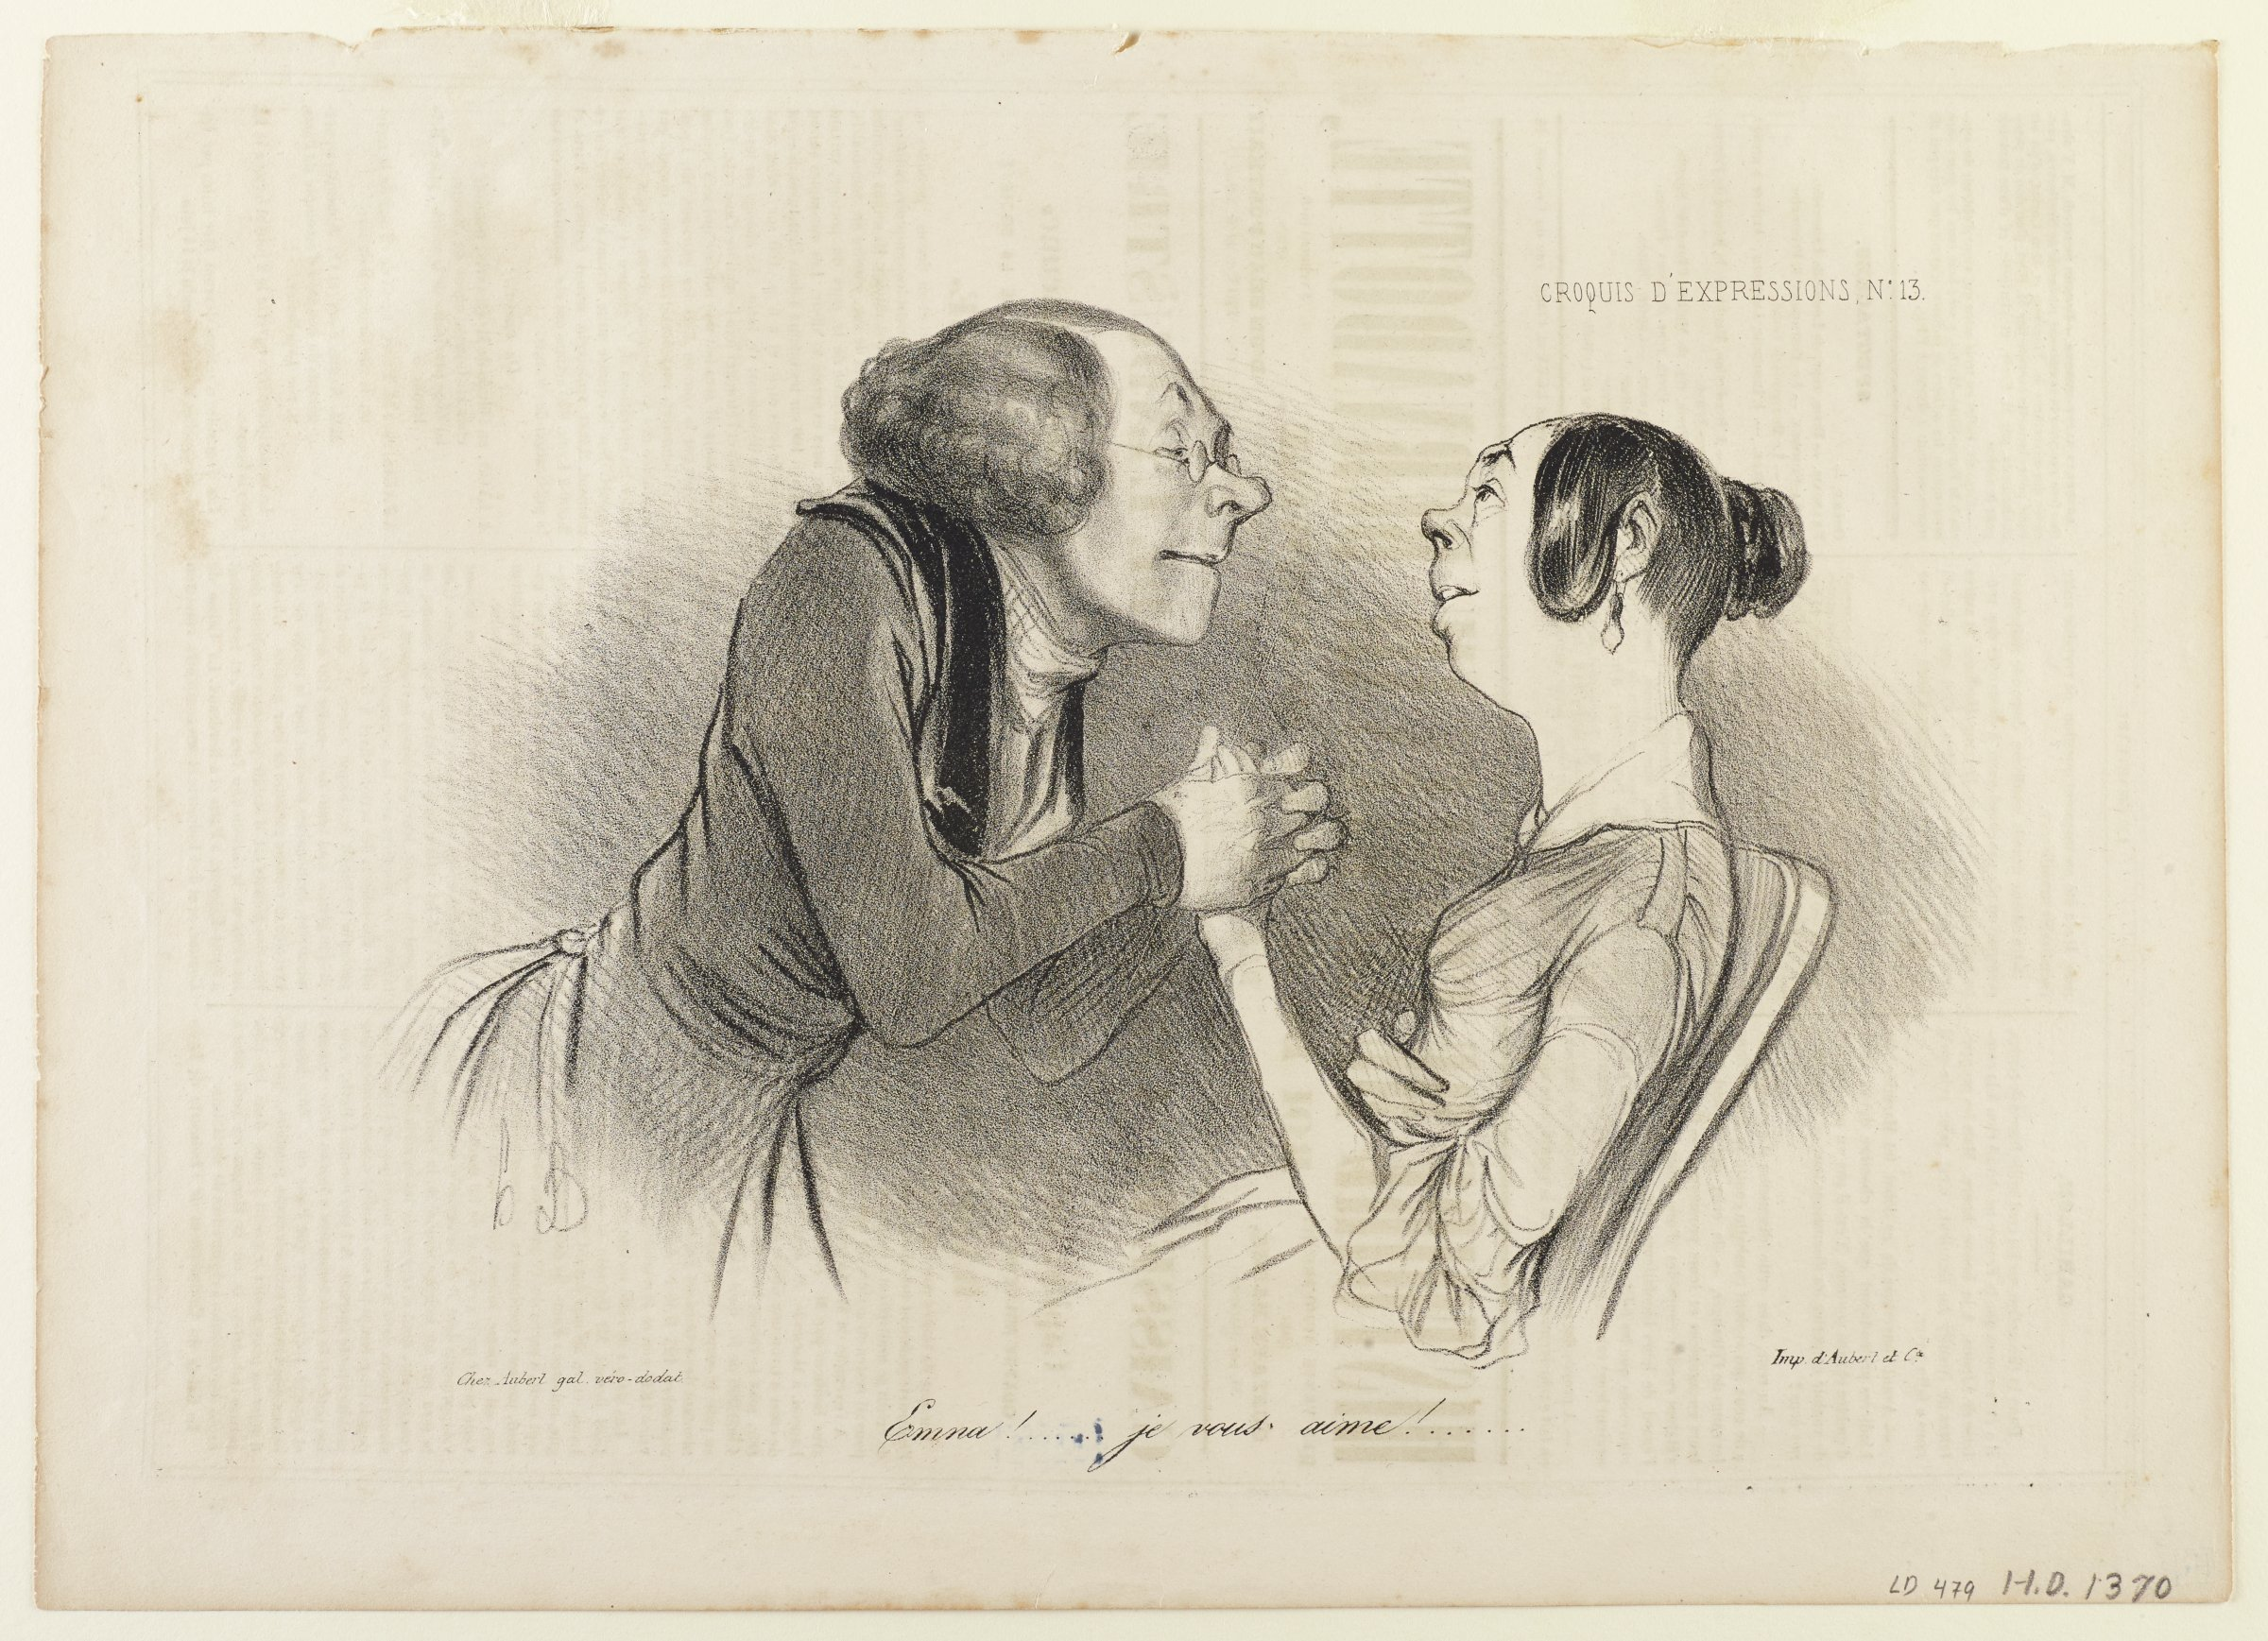 An older woman holds the hand of a younger woman as they look at each other.